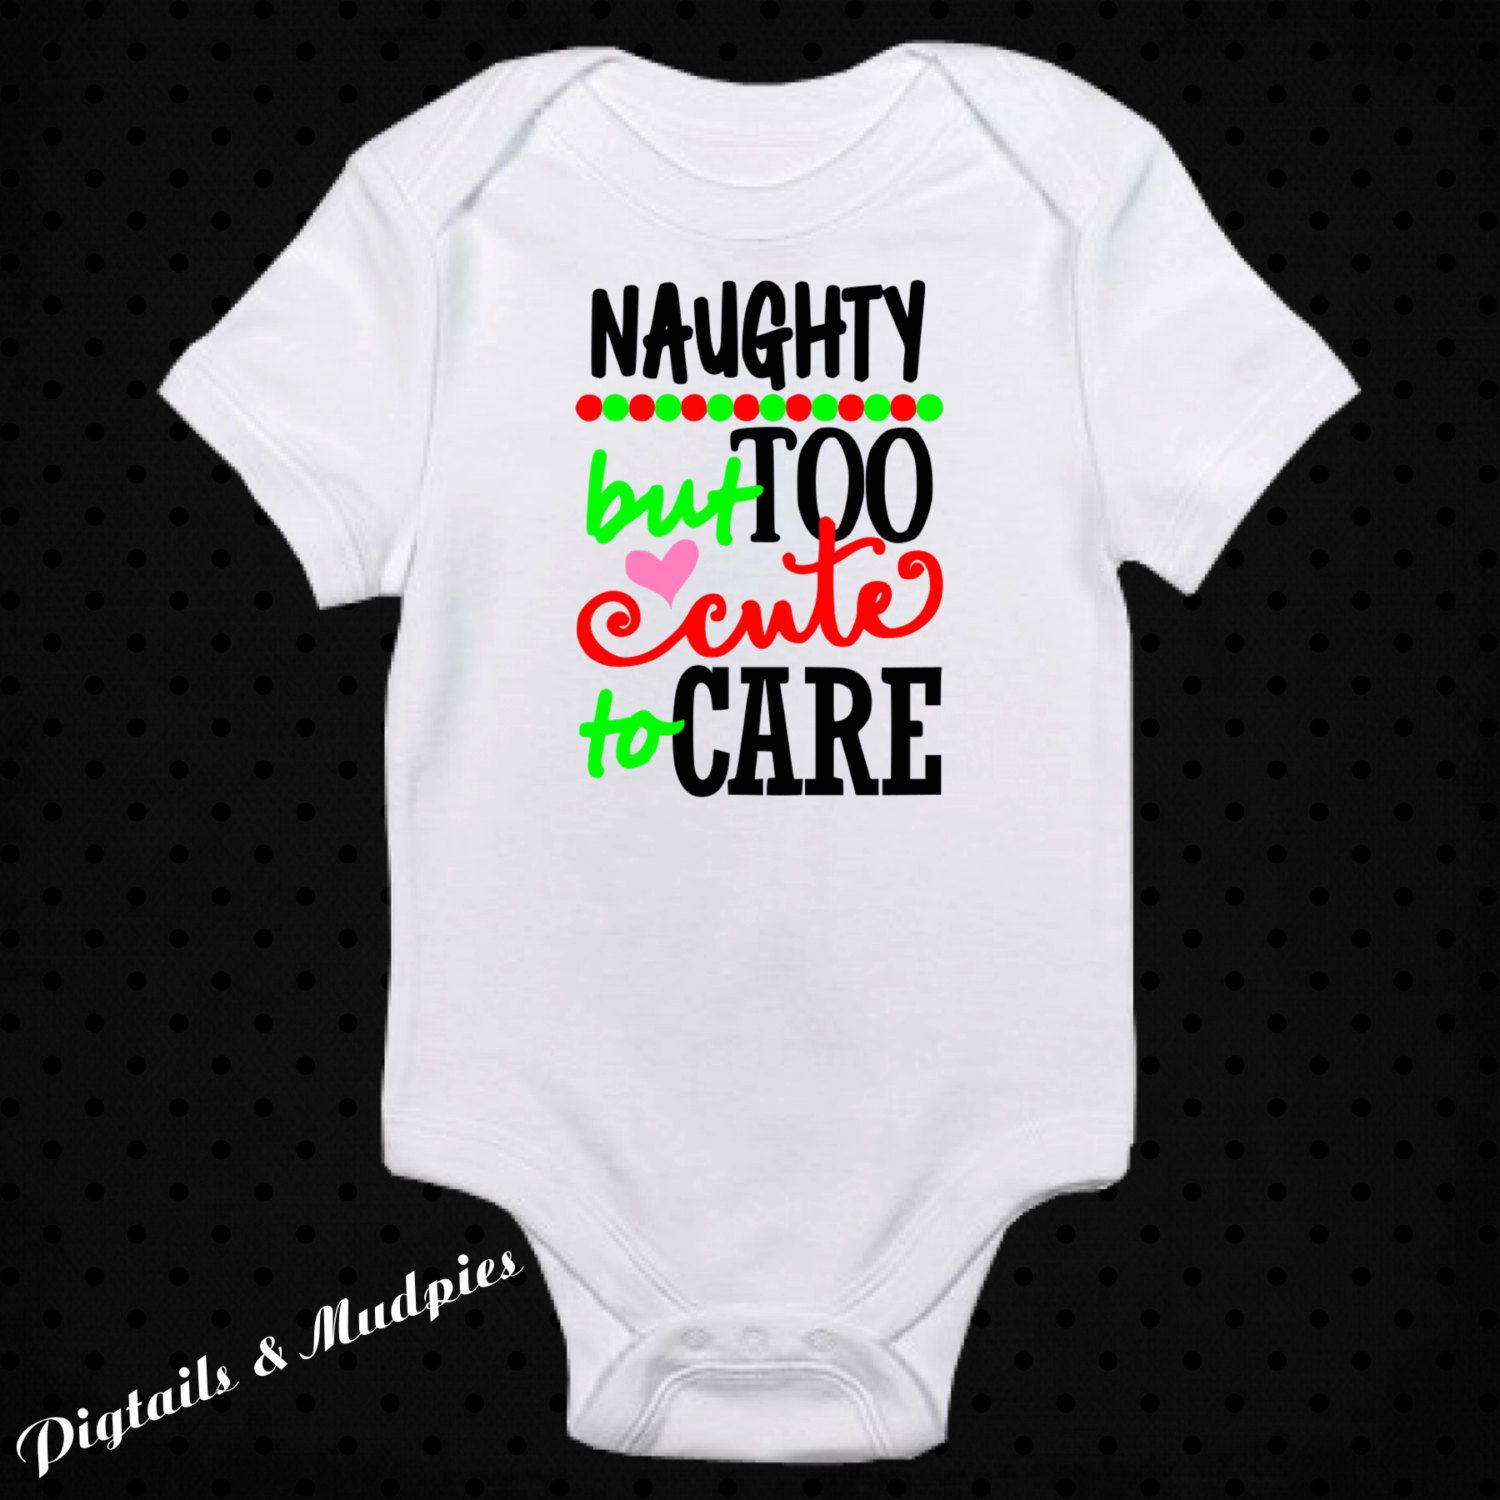 Naughty But Too Cute Cute To Care Christmas Bodysuit~Holiday Bodysuit~Baby Bodysuit~Girl And Boy Christmas Bodysuit~Christmas Gift by PigtailsAndMudpies1 on Etsy